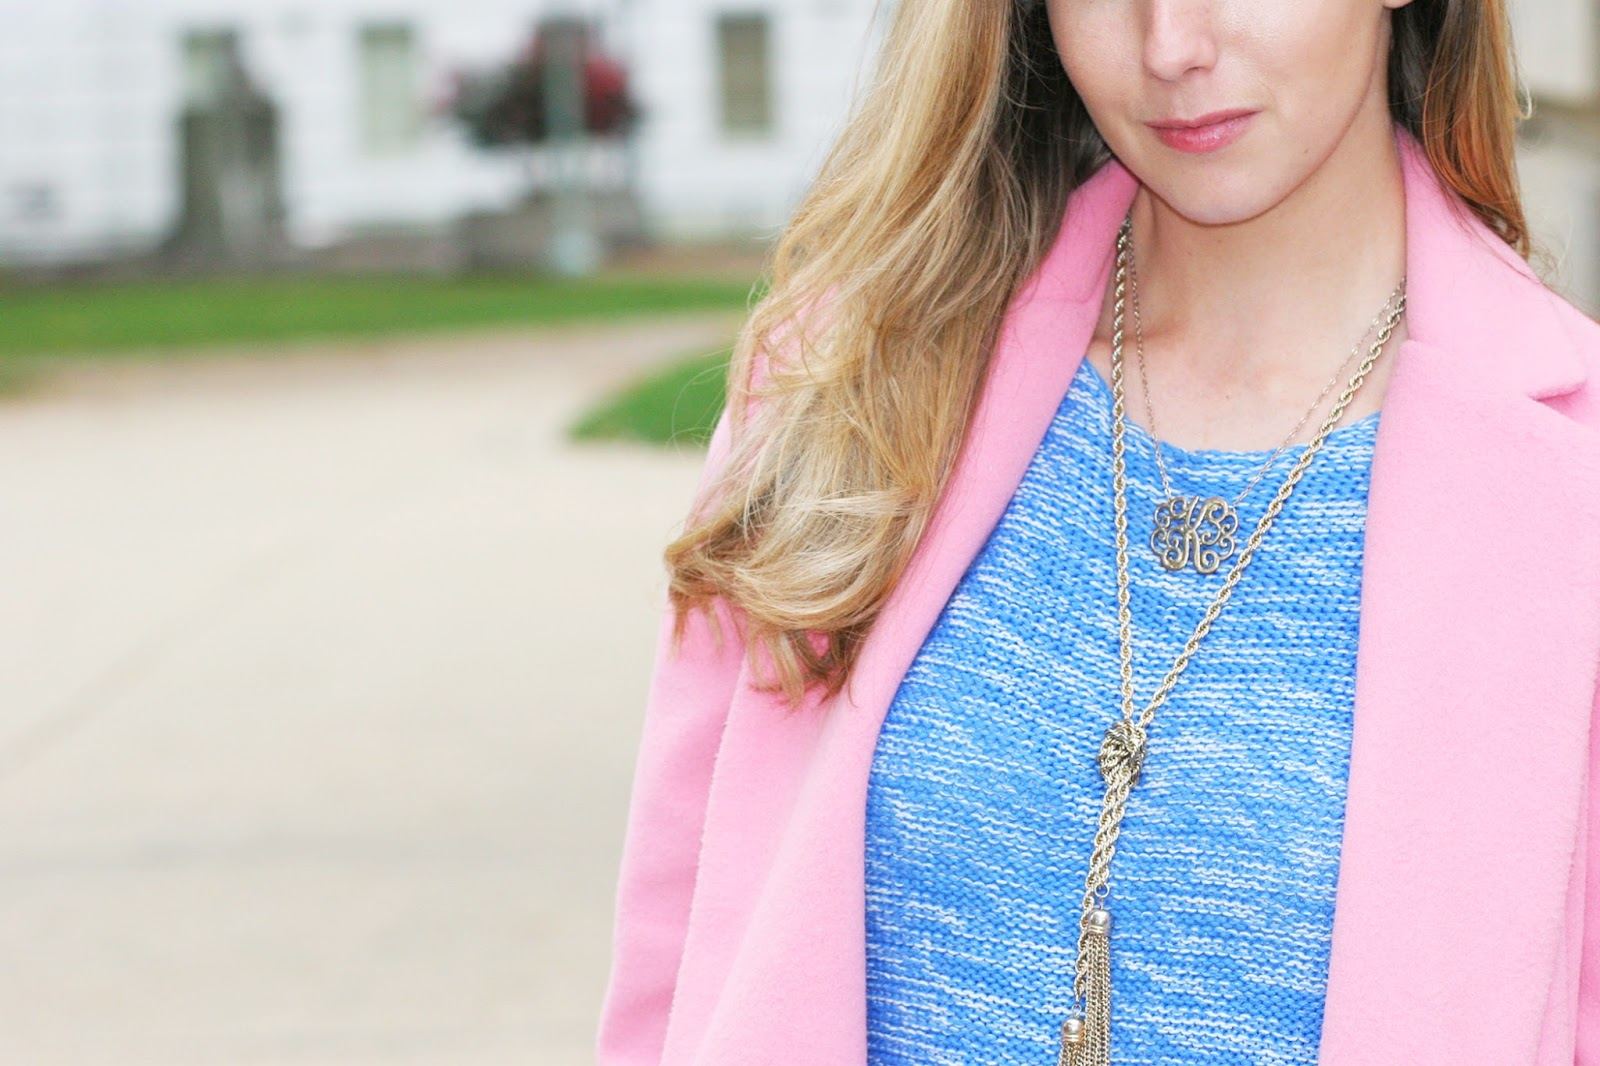 monogram-and-gold-tassel-necklace-layers